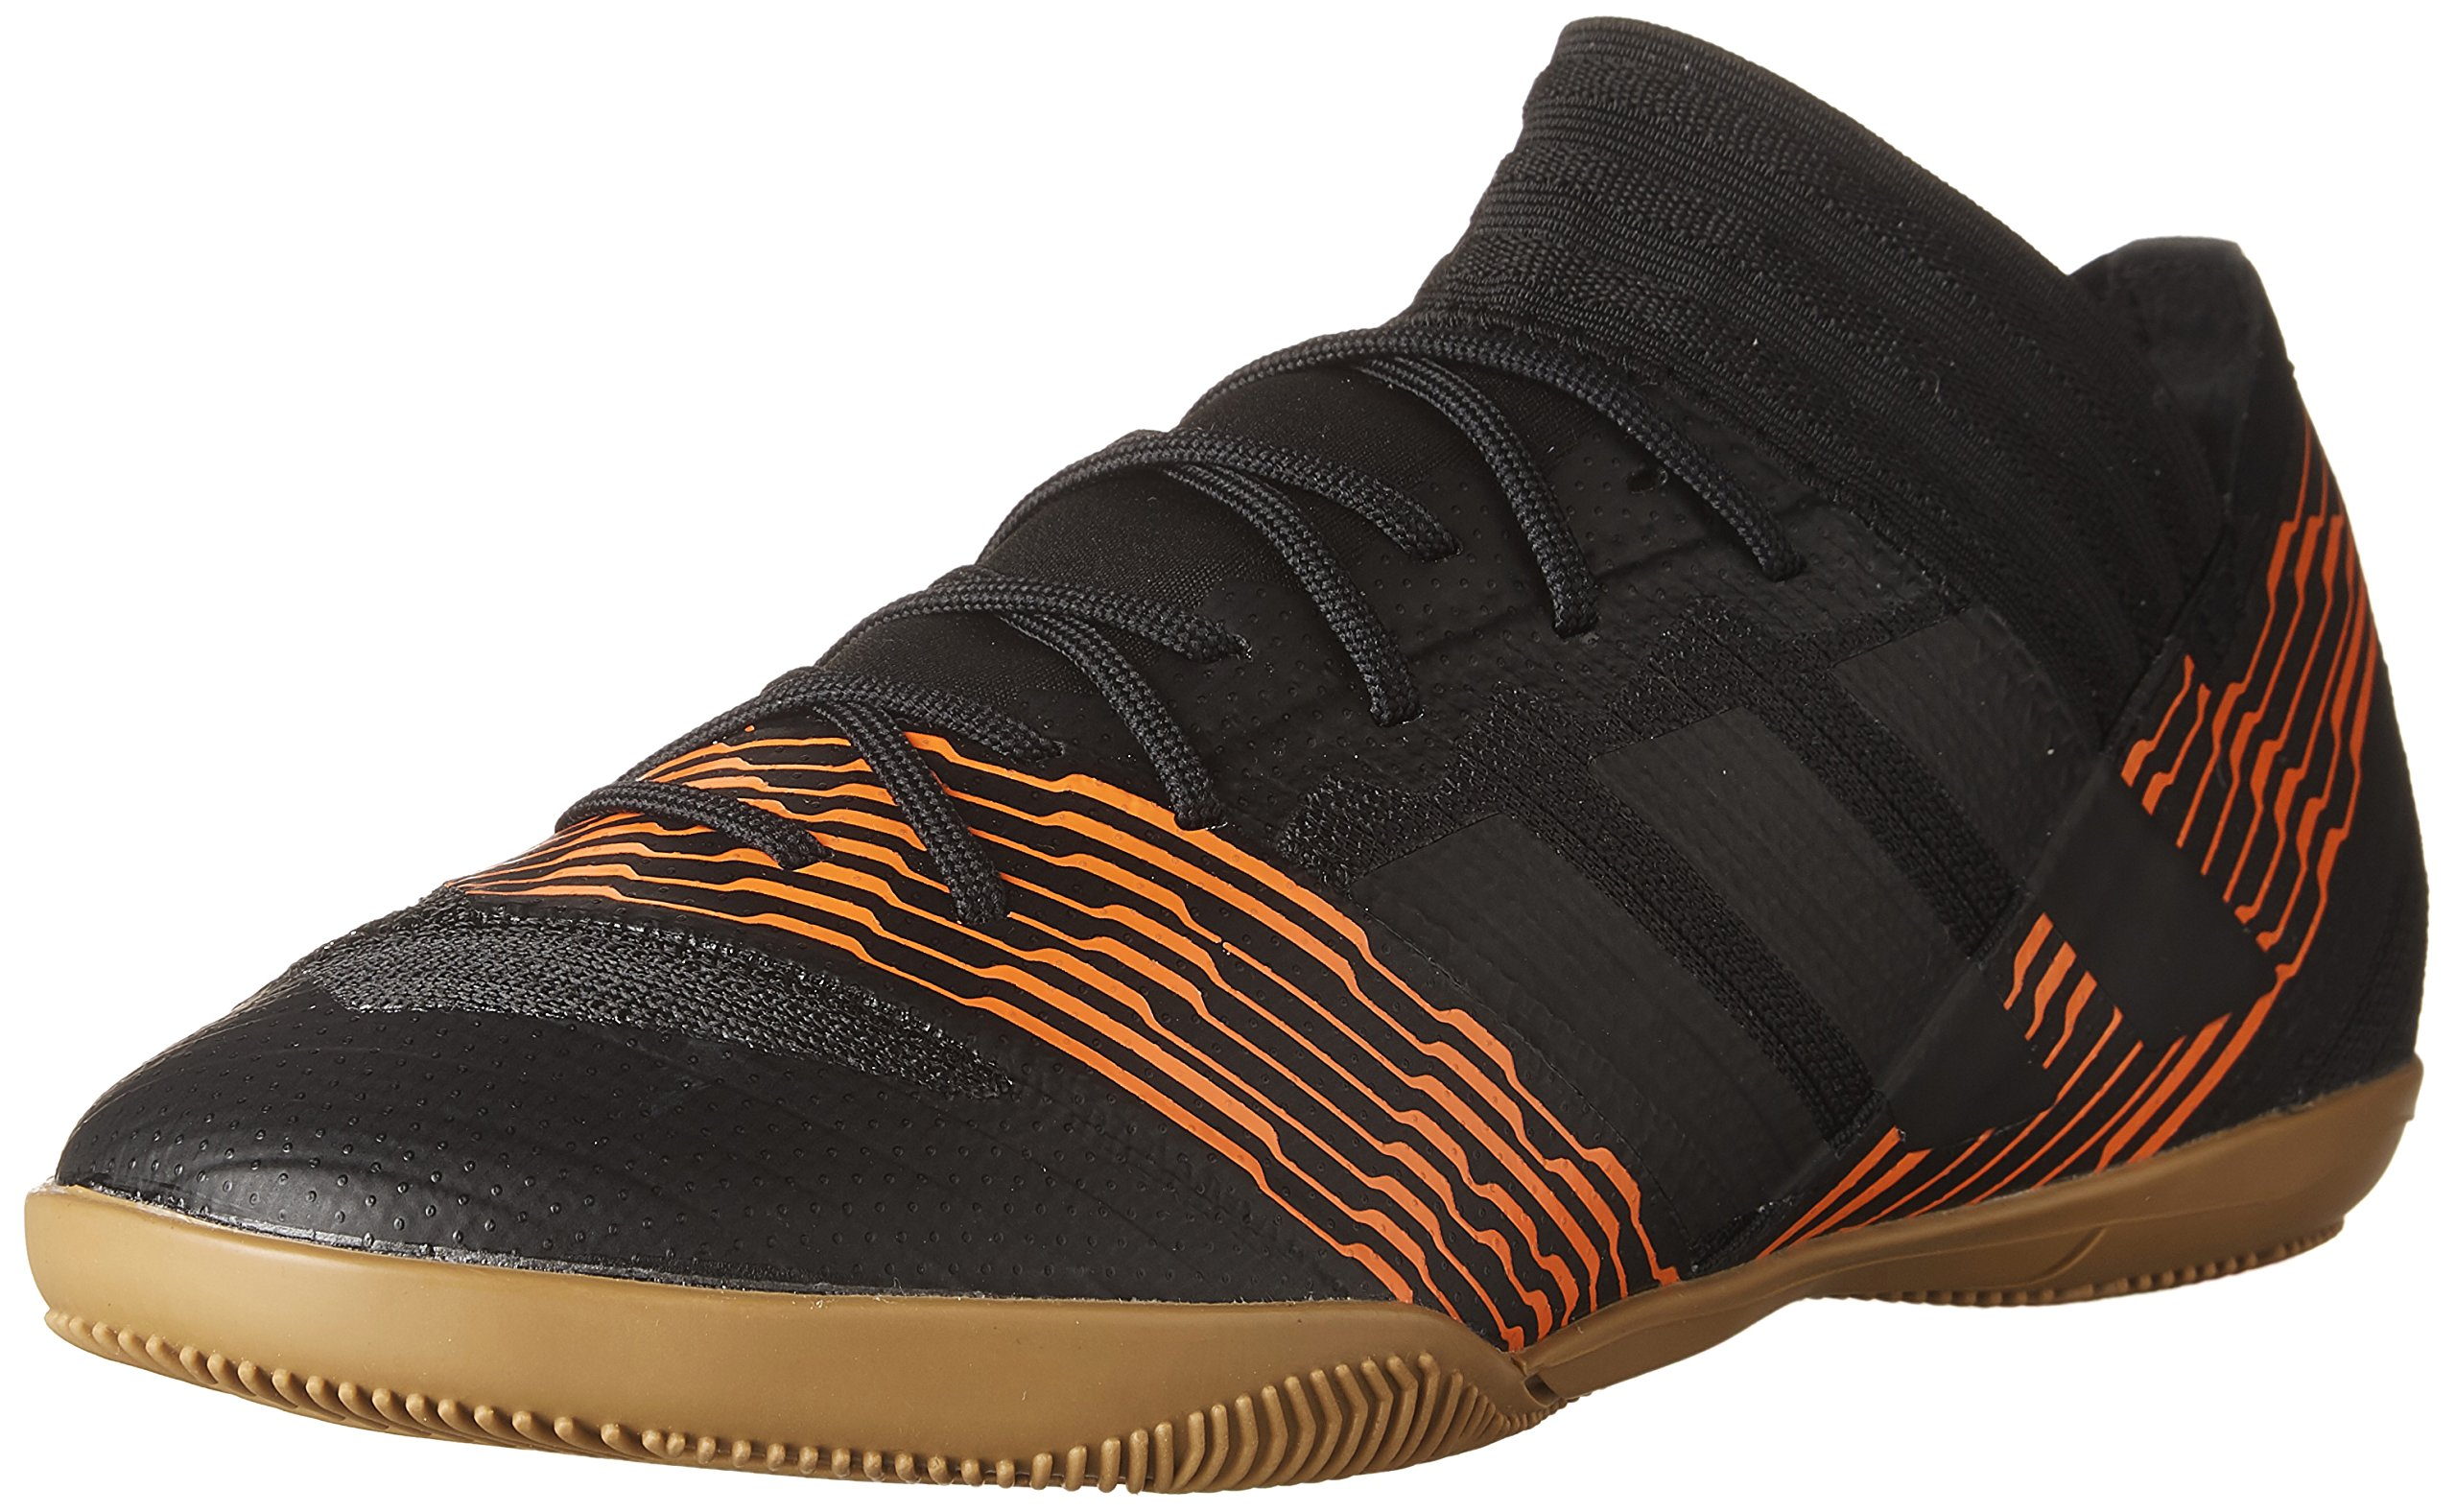 adidas Men's Nemeziz Tango 17.3 in Soccer Shoe, Core Black/Core Black/Solar Red, 13 M US by adidas